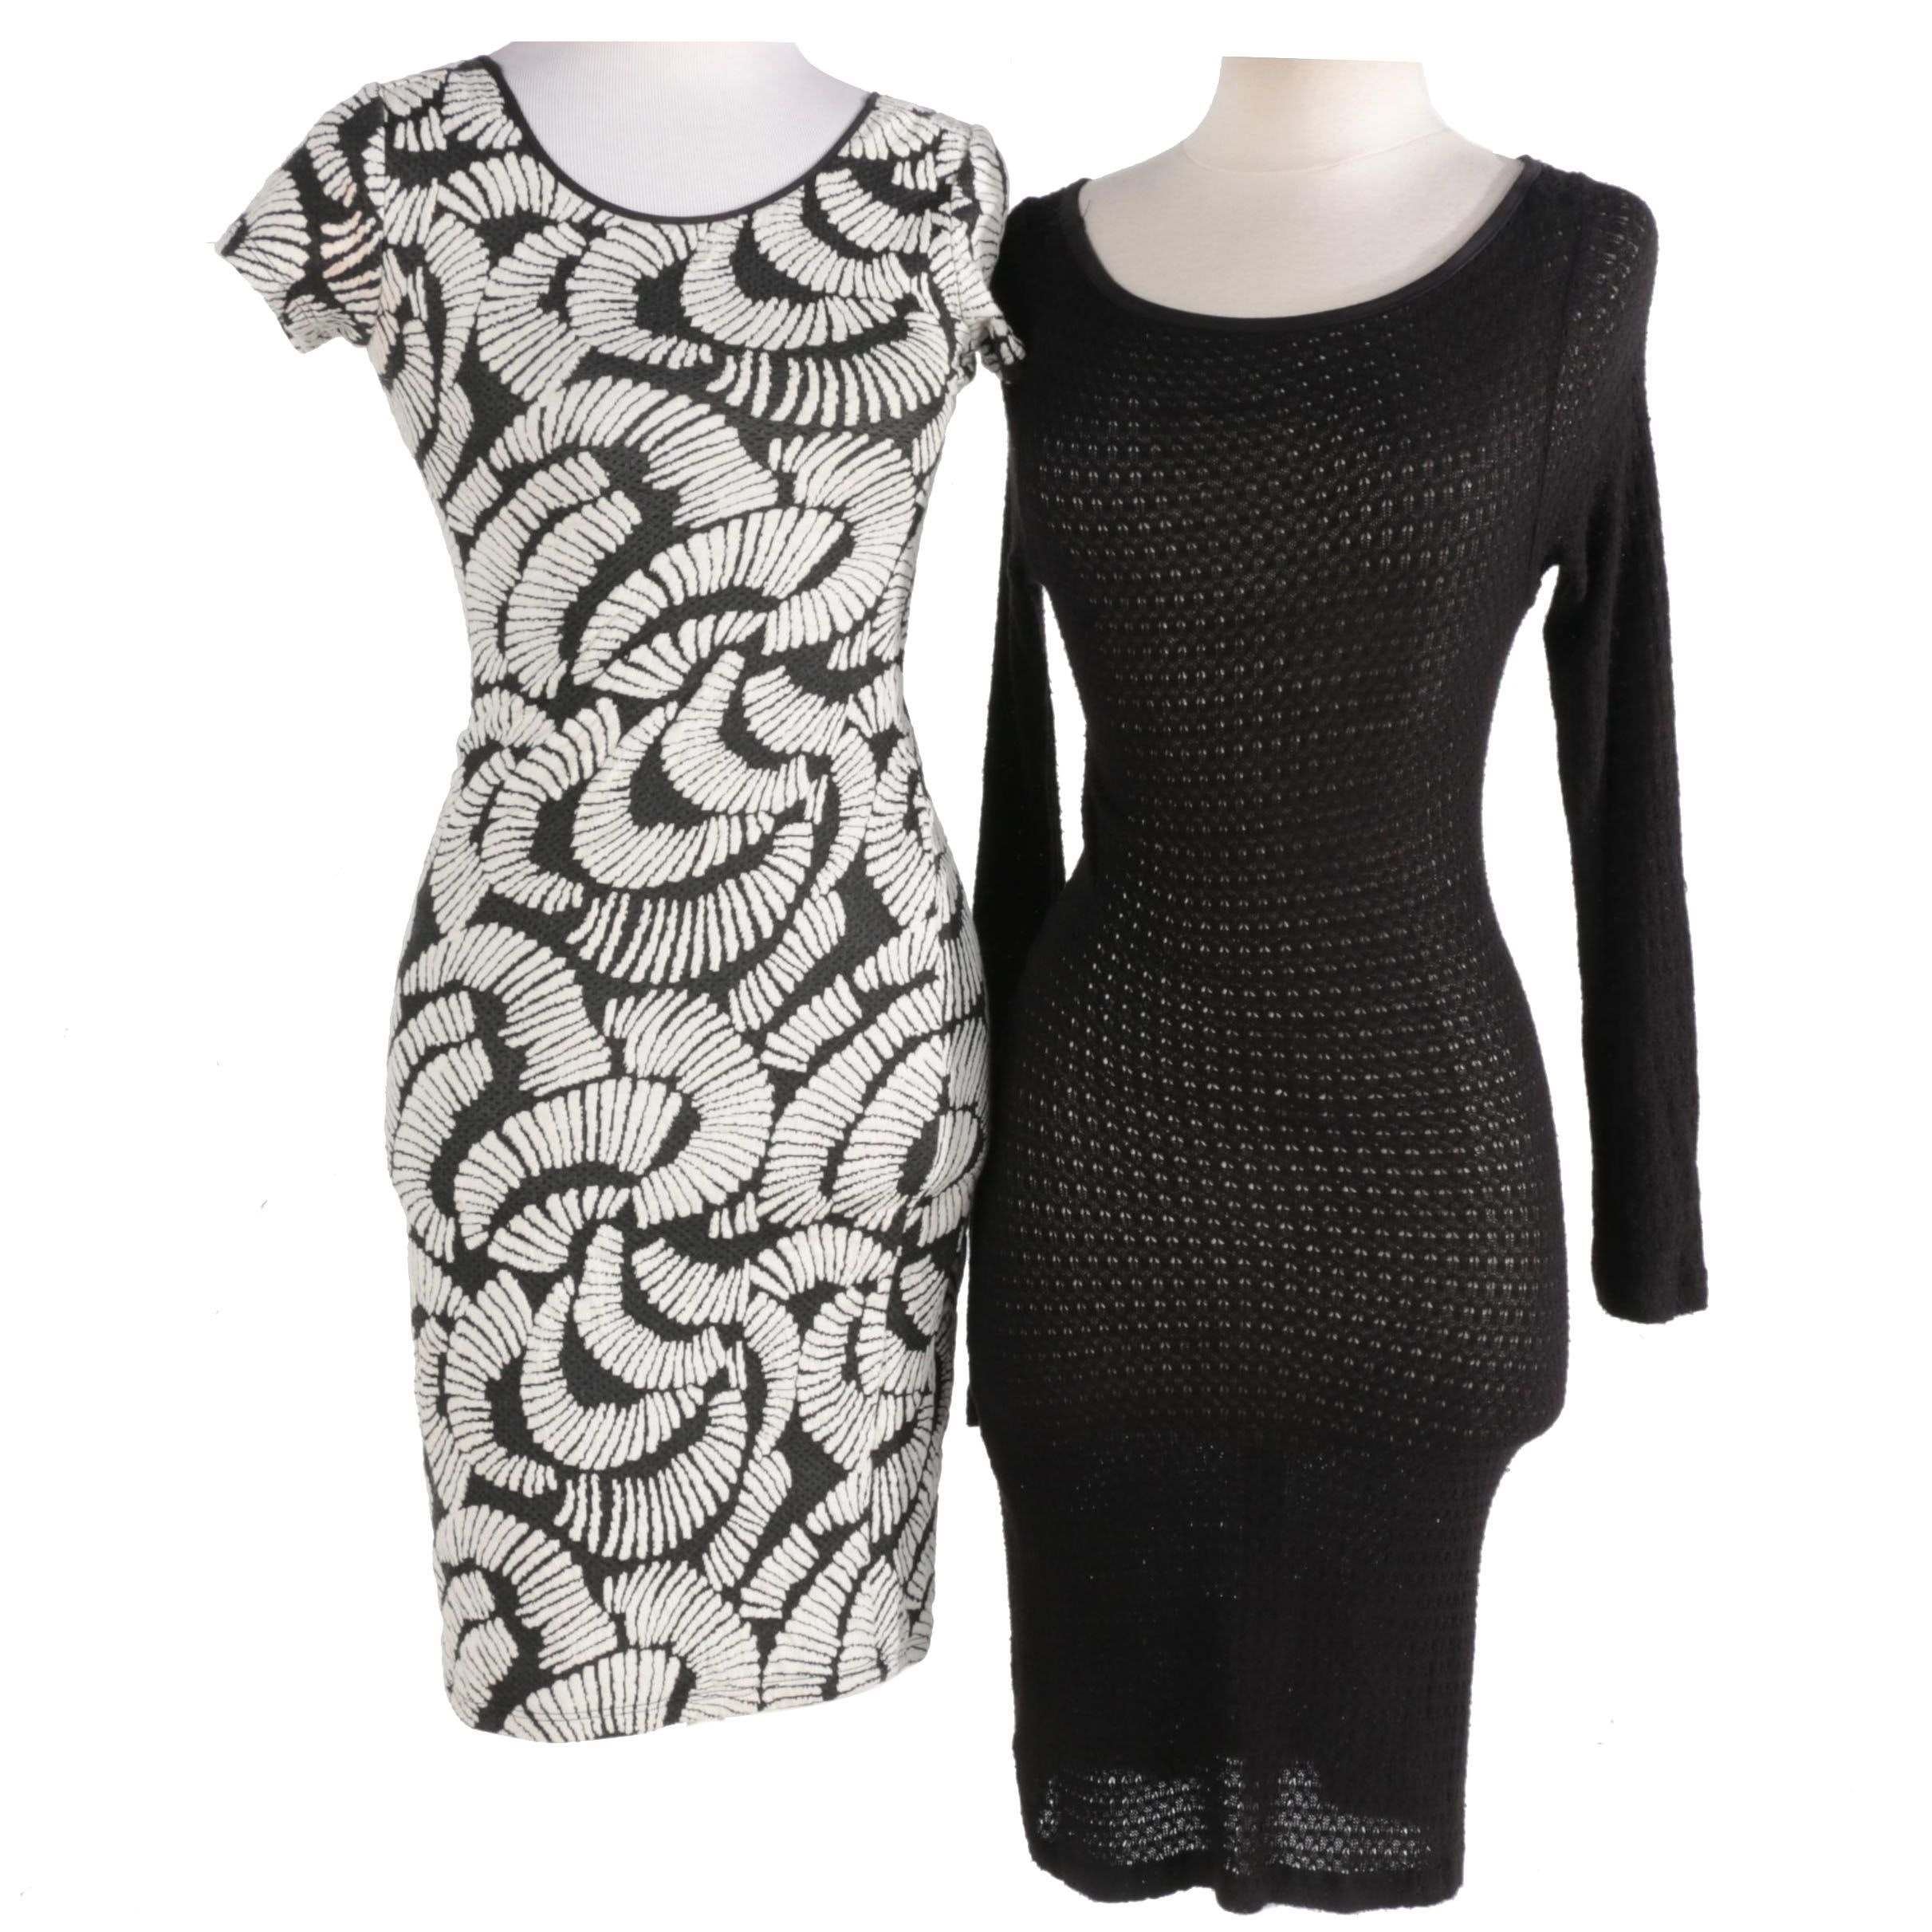 Women's Contemporary Knit Dresses